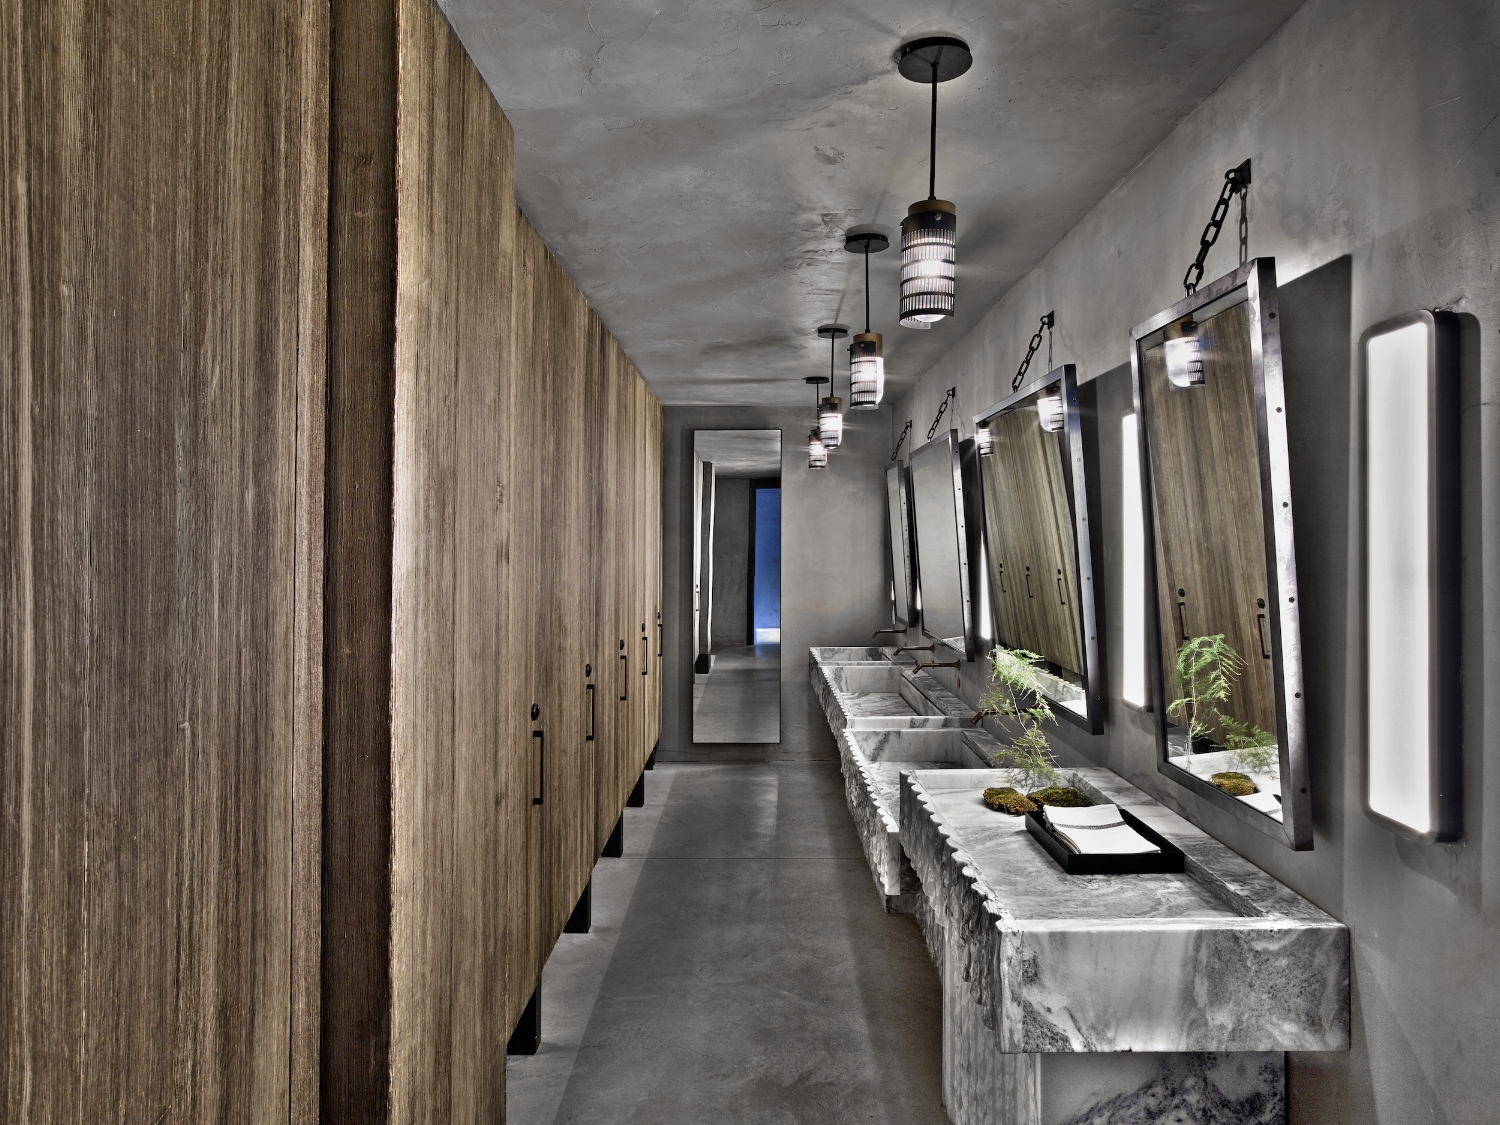 Finest Get Real Surfaces — Get Real Surfaces Concrete Wall Finishes - All CQ19